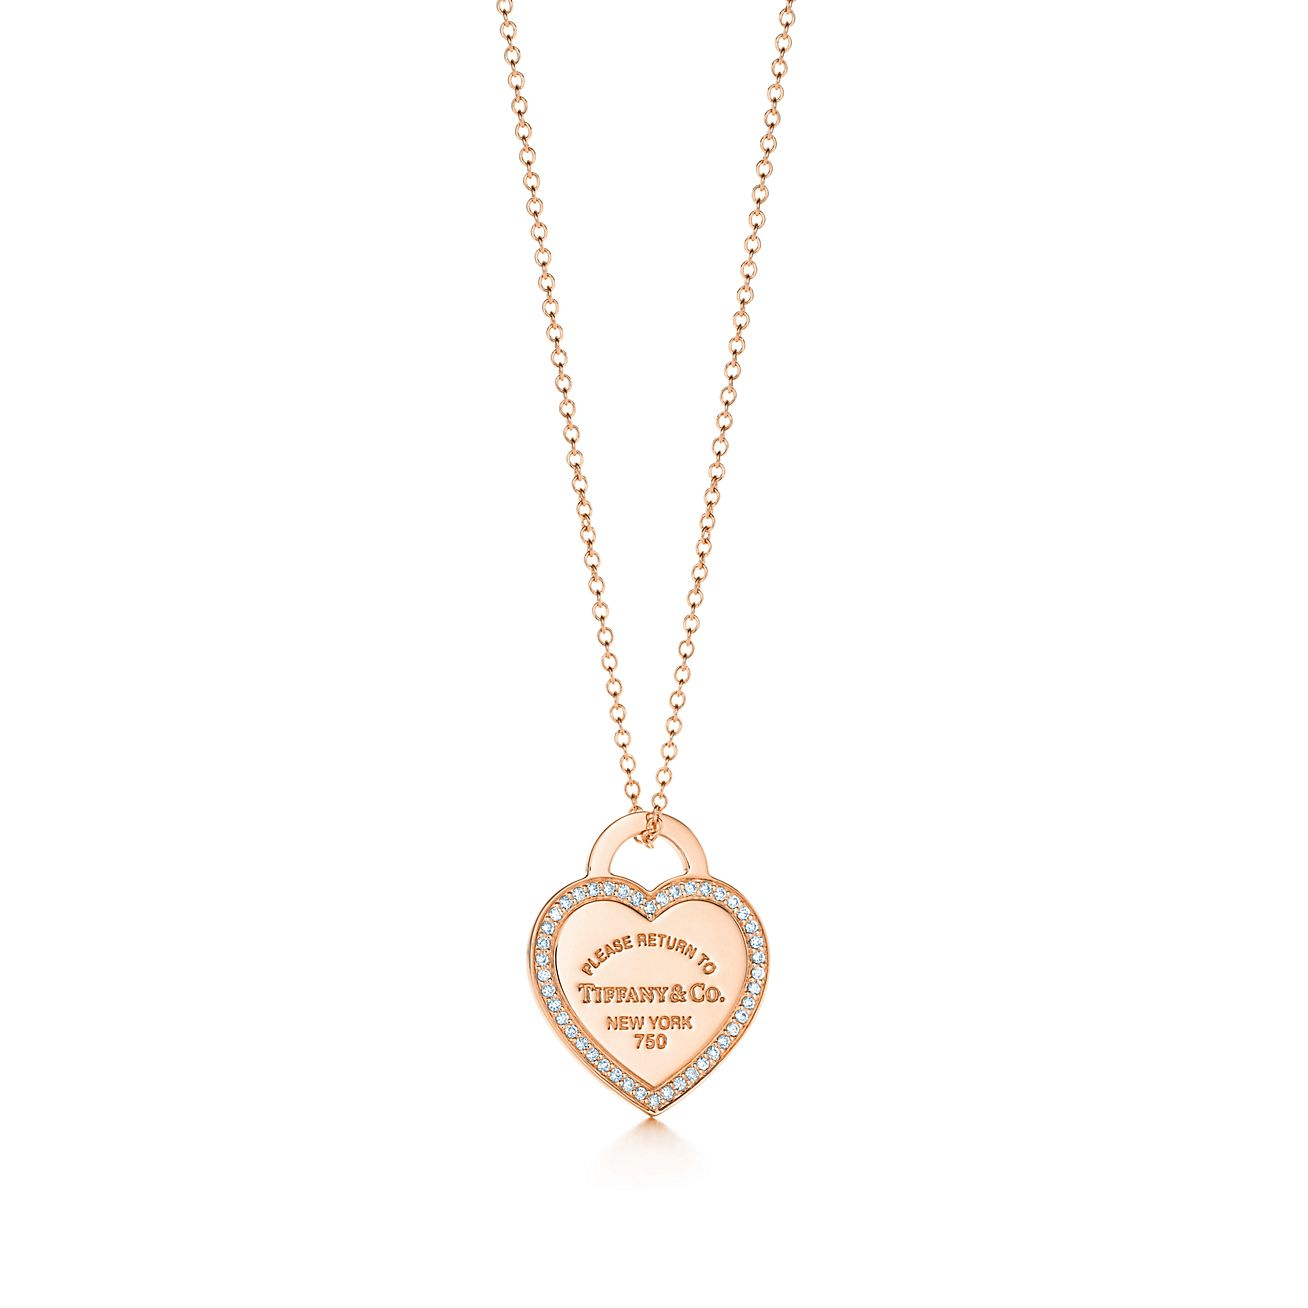 Return to tiffany small heart tag pendant in 18k rose gold with return to tiffanyheart tag pendant aloadofball Image collections